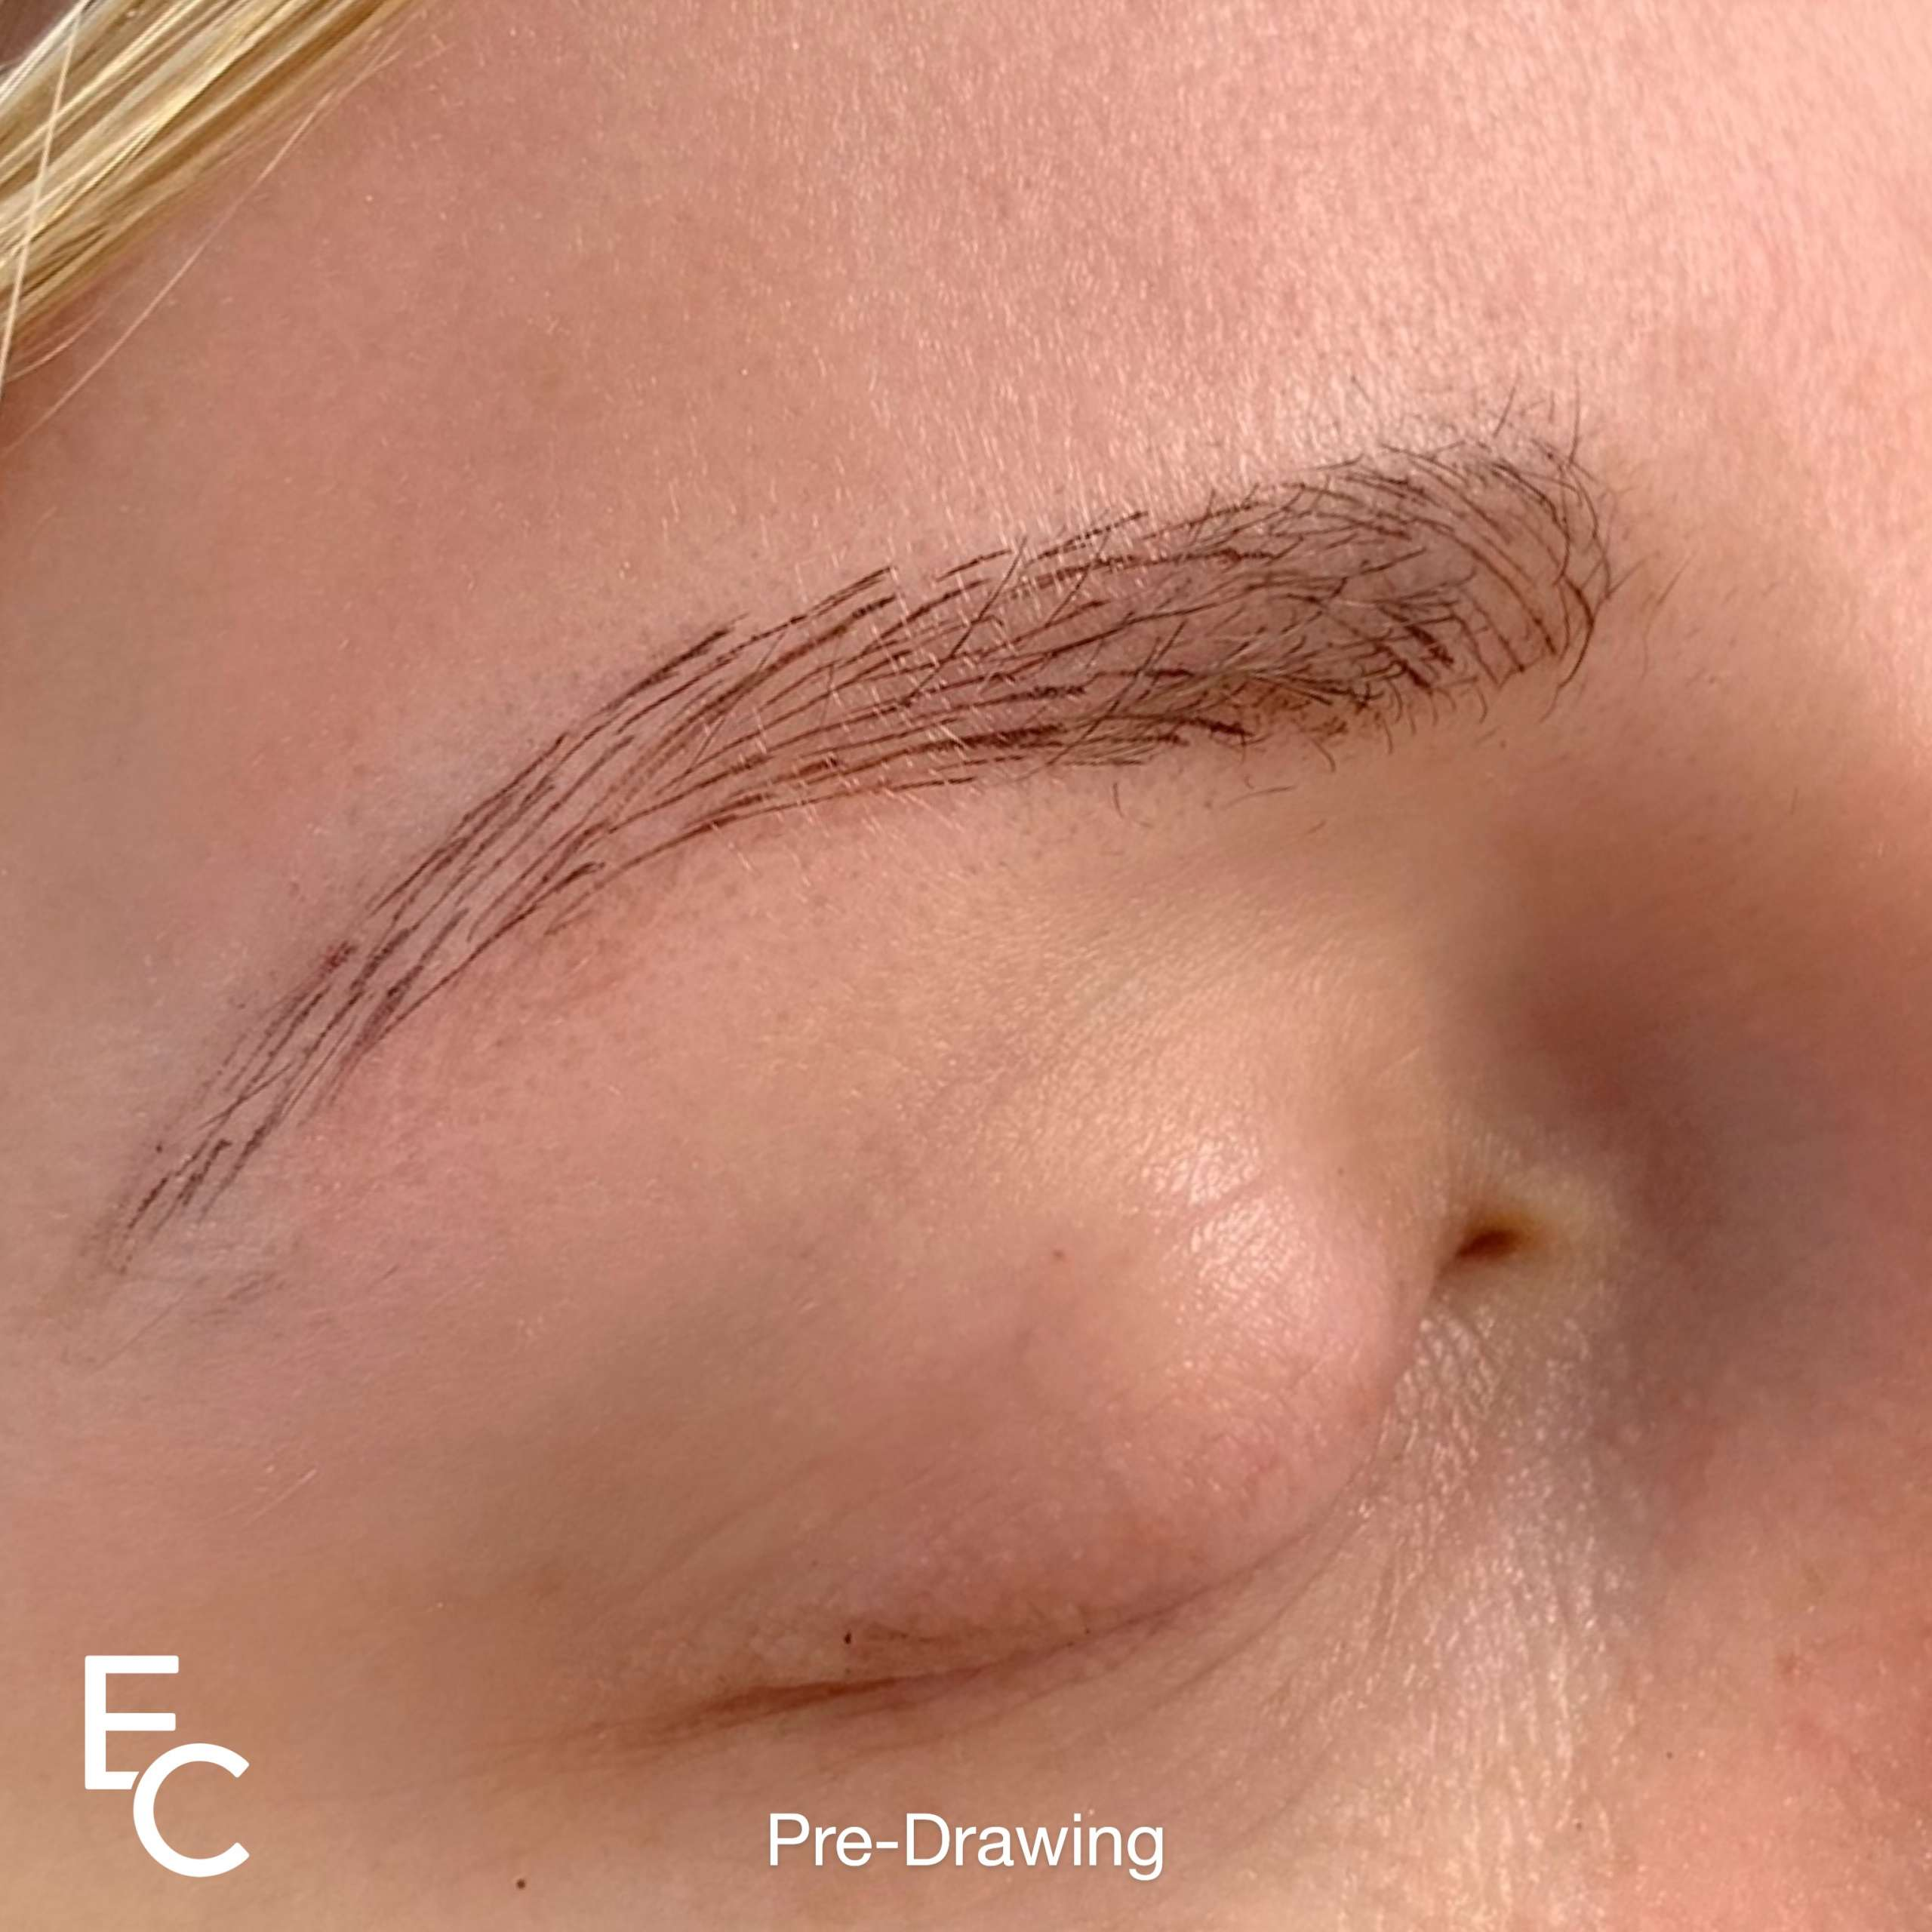 Eyebrow tattooing Pre drawing the shape